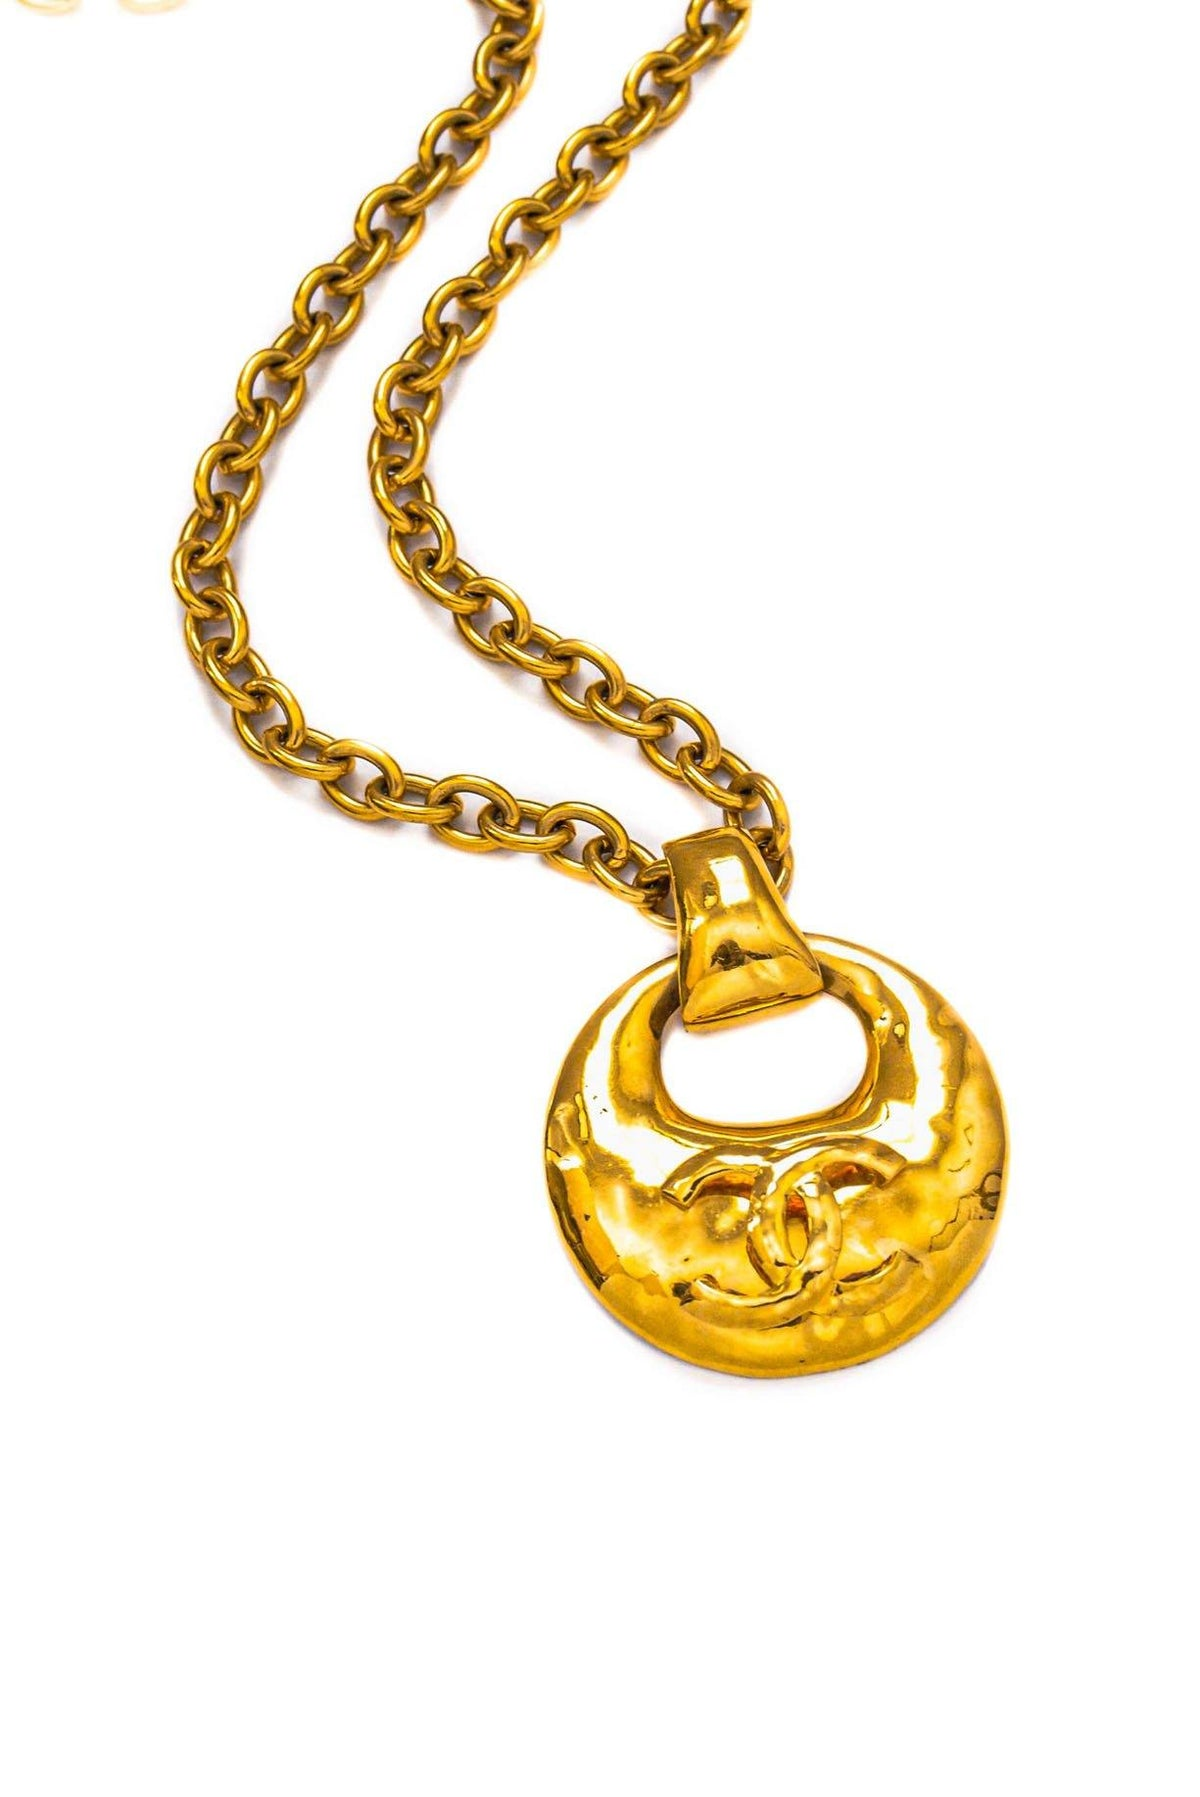 Vintage Chanel CC Statement Door Knocker Necklace from Sweet and Spark